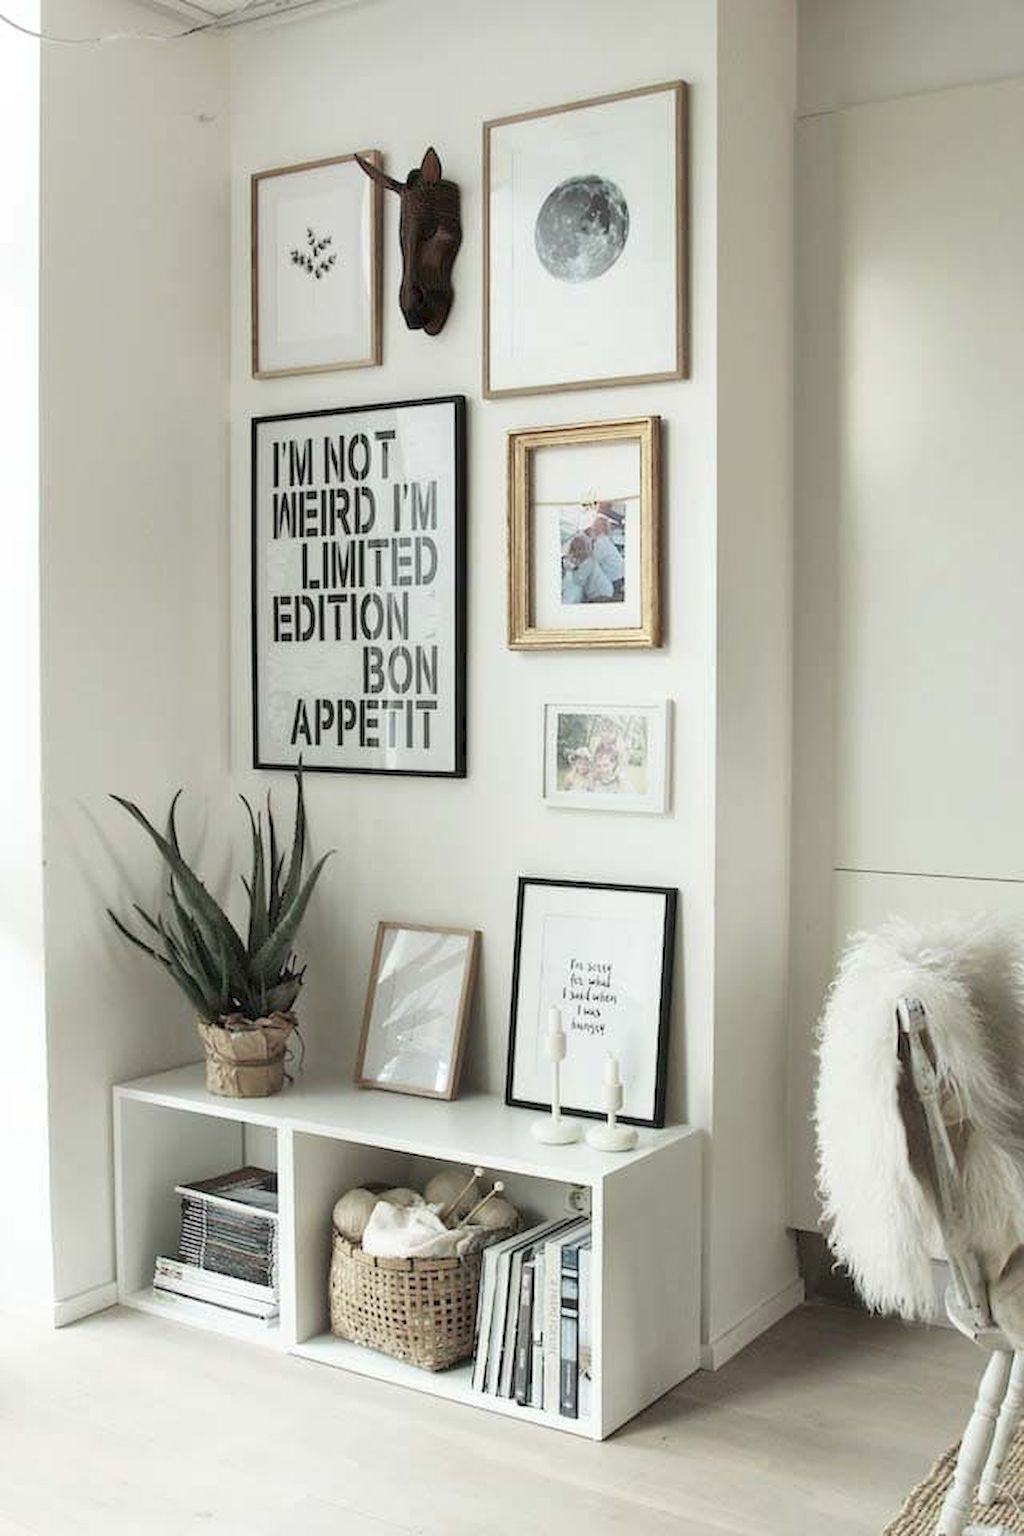 Rental apartment decorating ideas on a budget (37 | Apartments ...